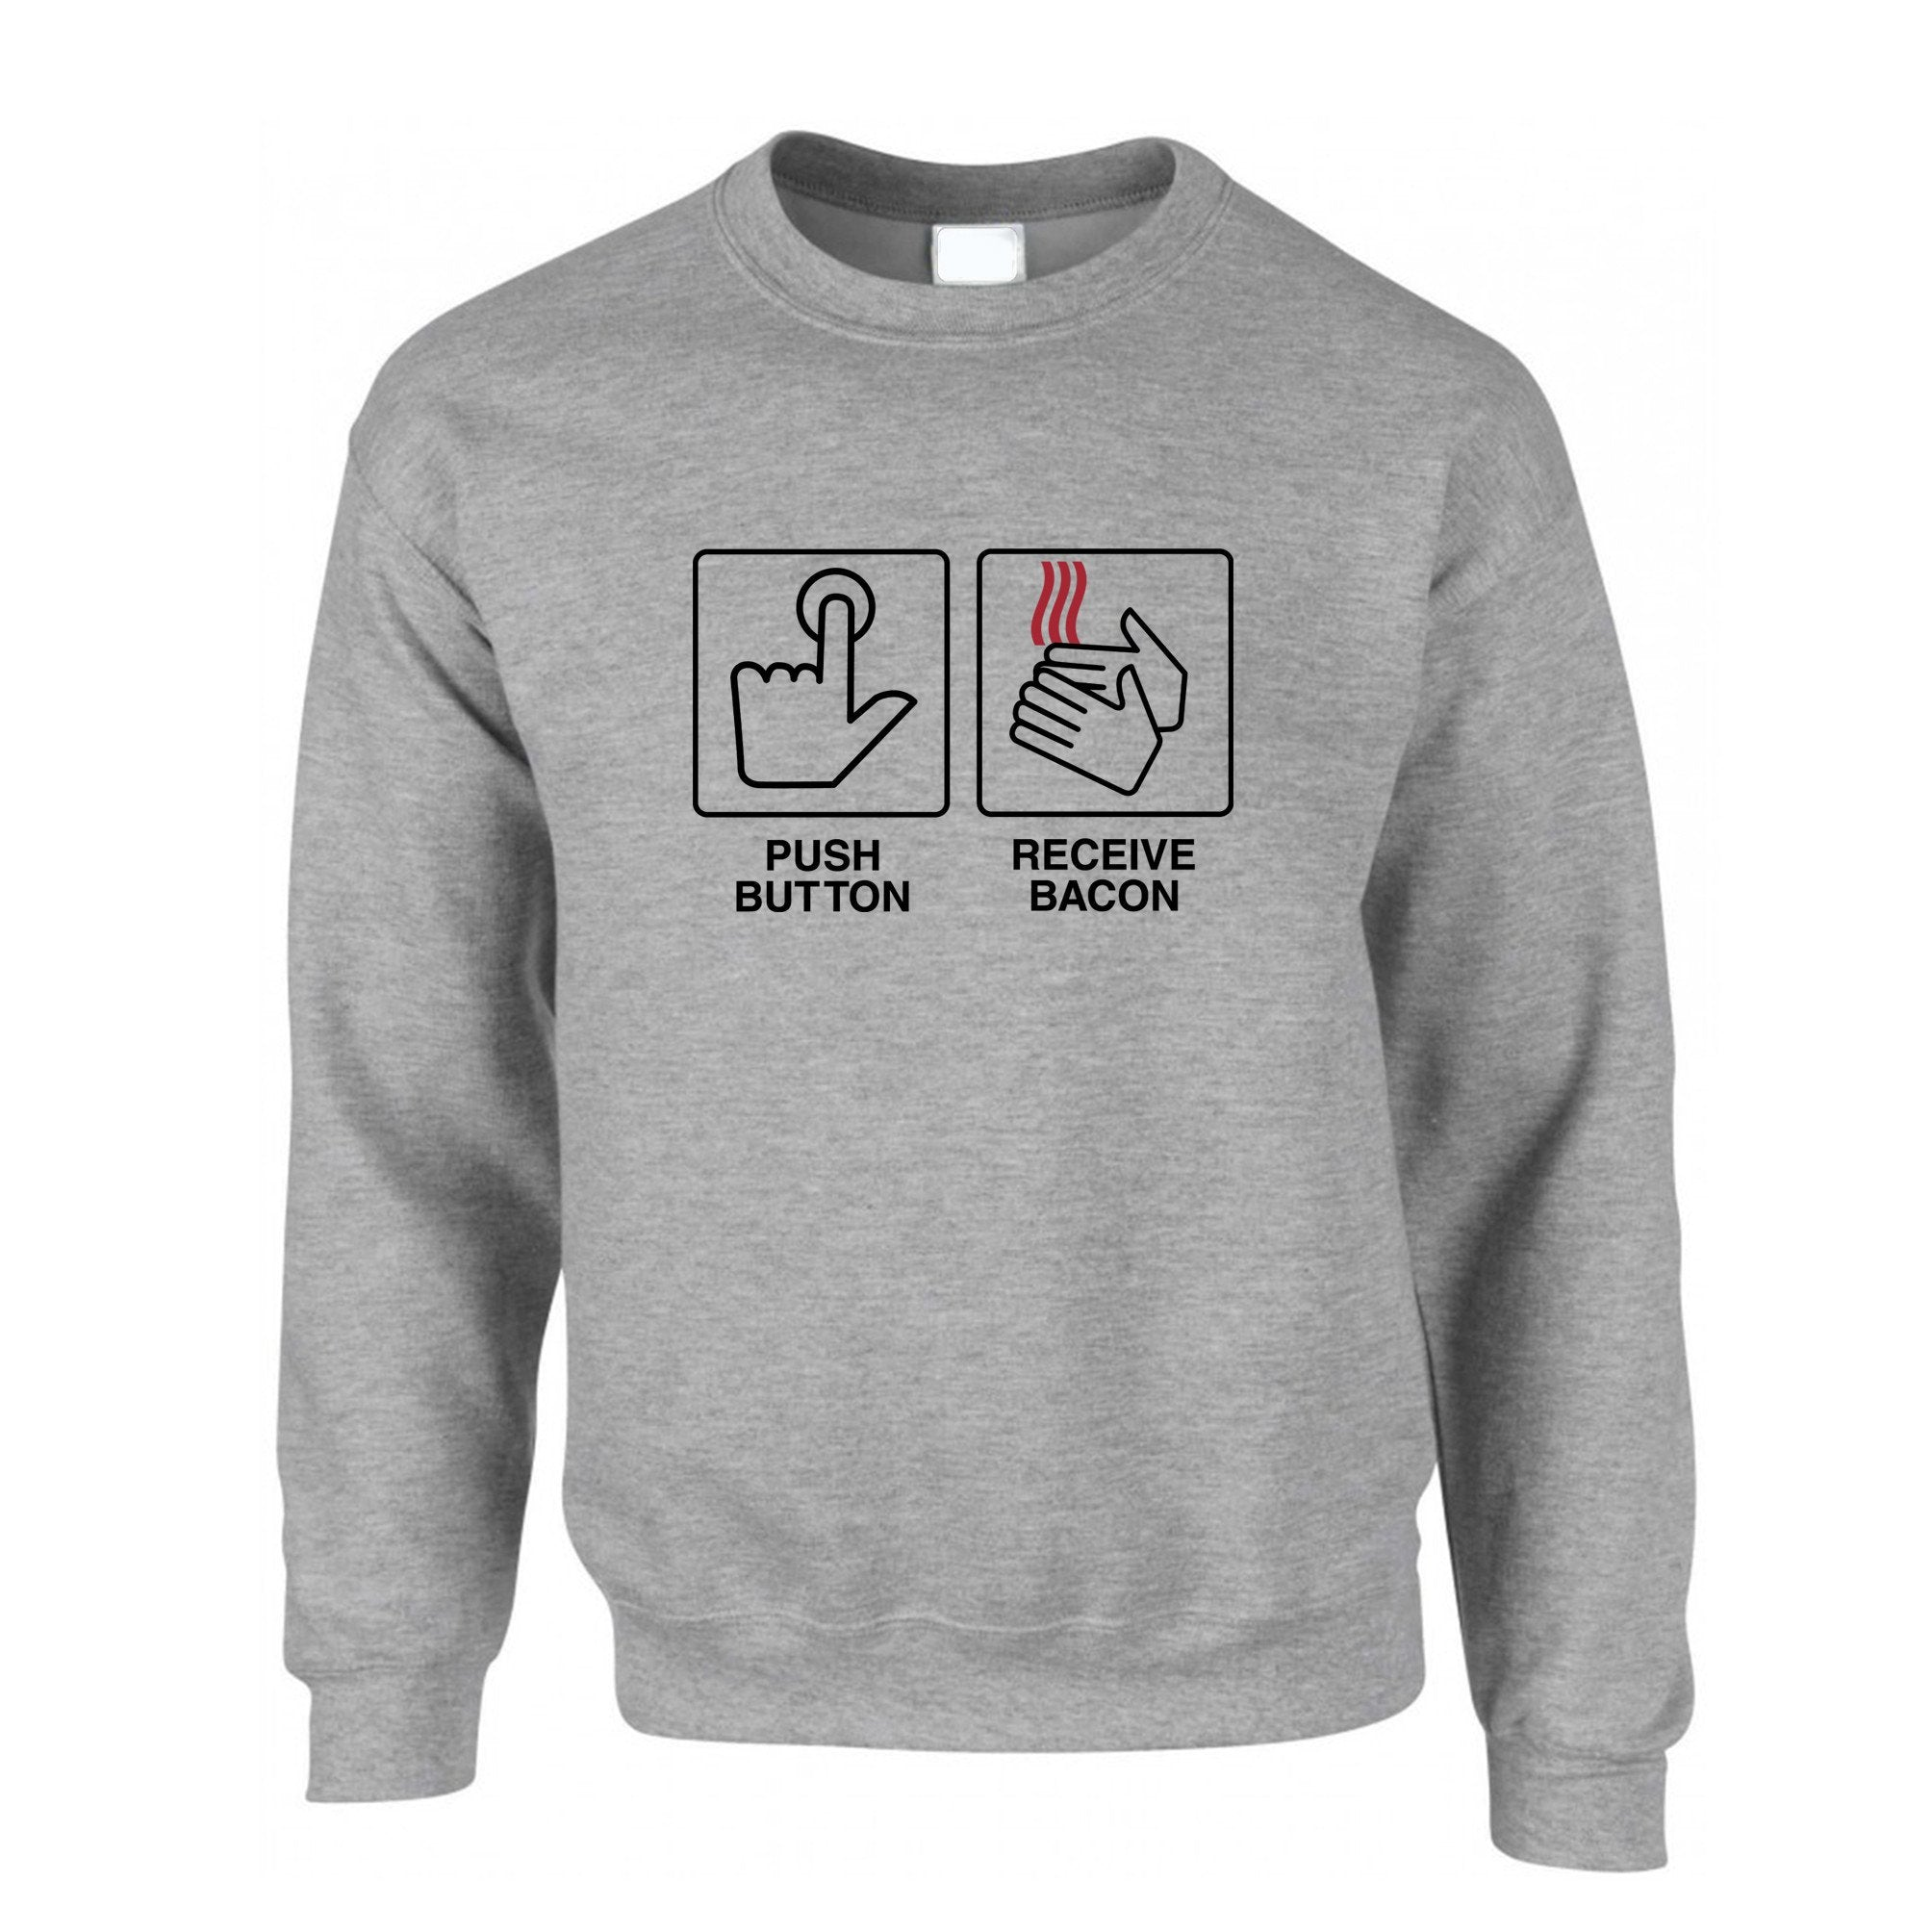 Novelty Jumper Push Button, Recieve Bacon Meme Sweatshirt Sweater